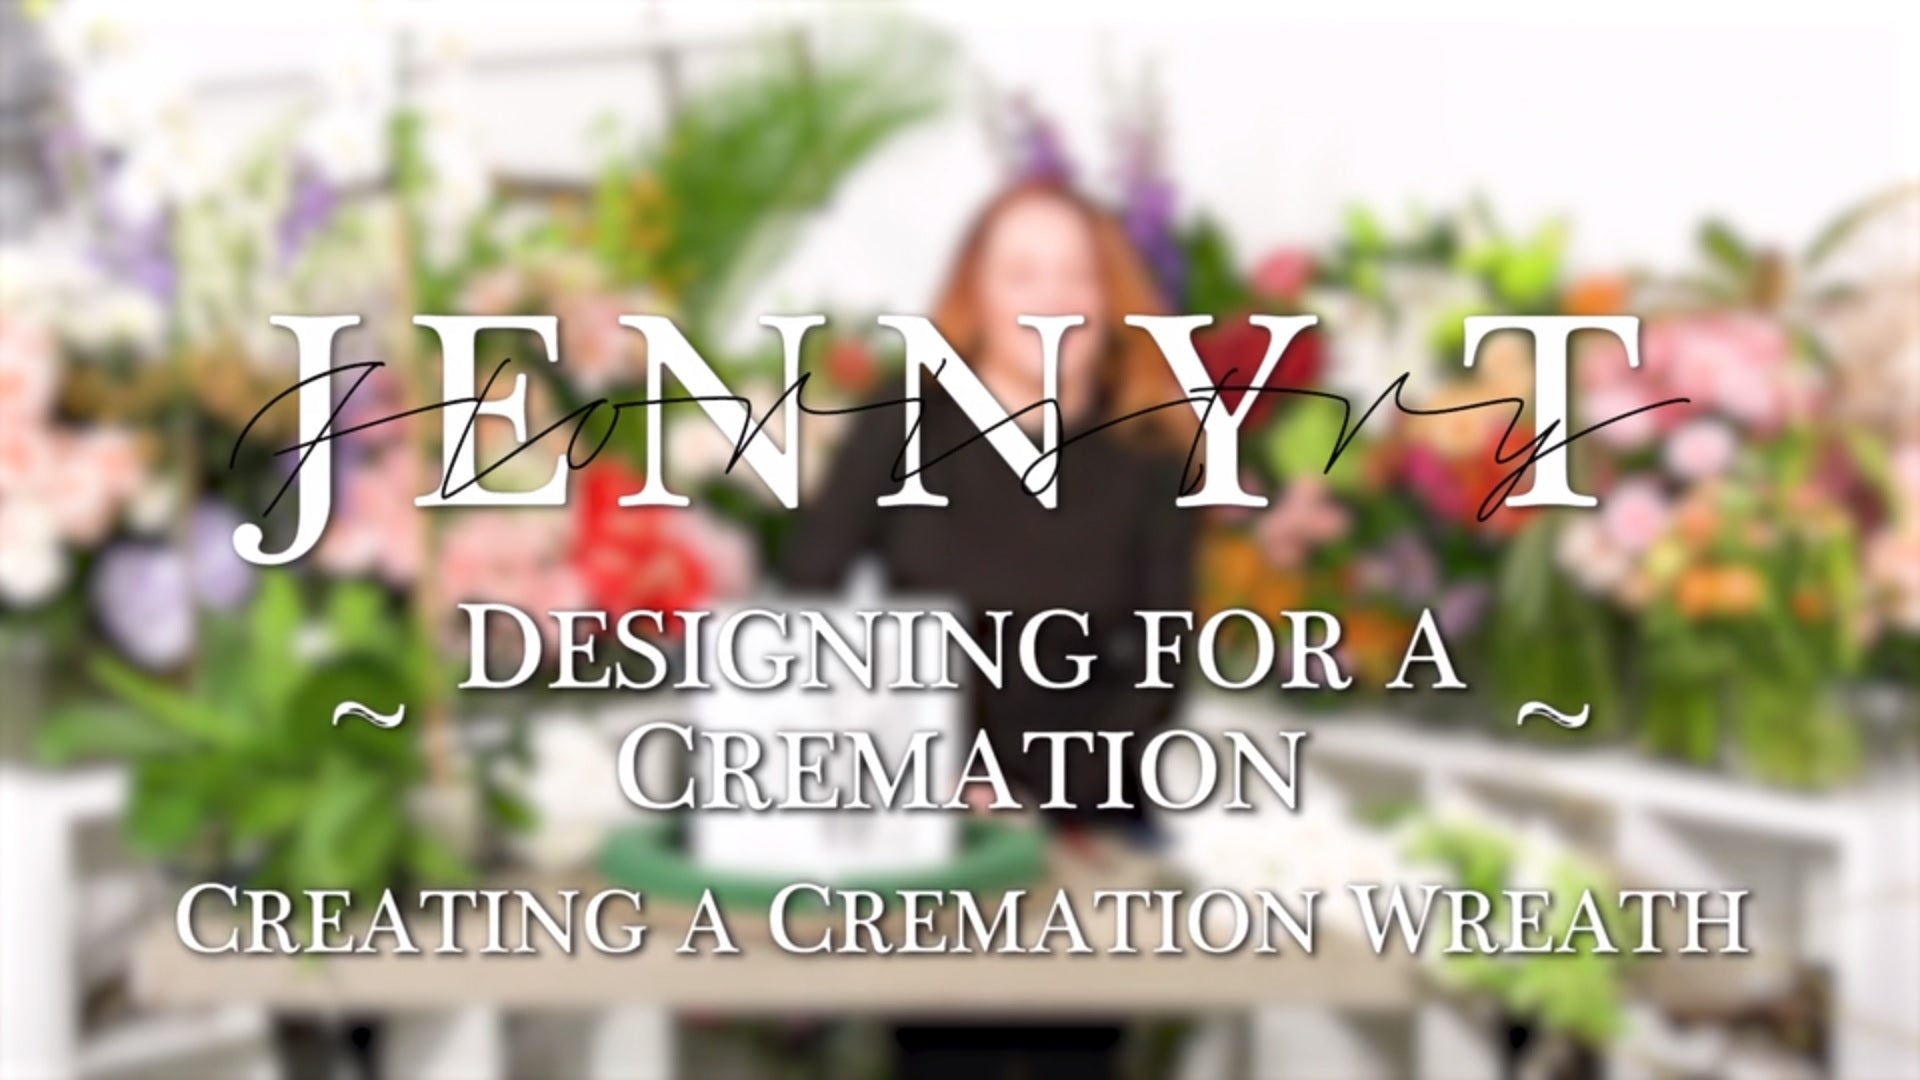 Designing for a Cremation